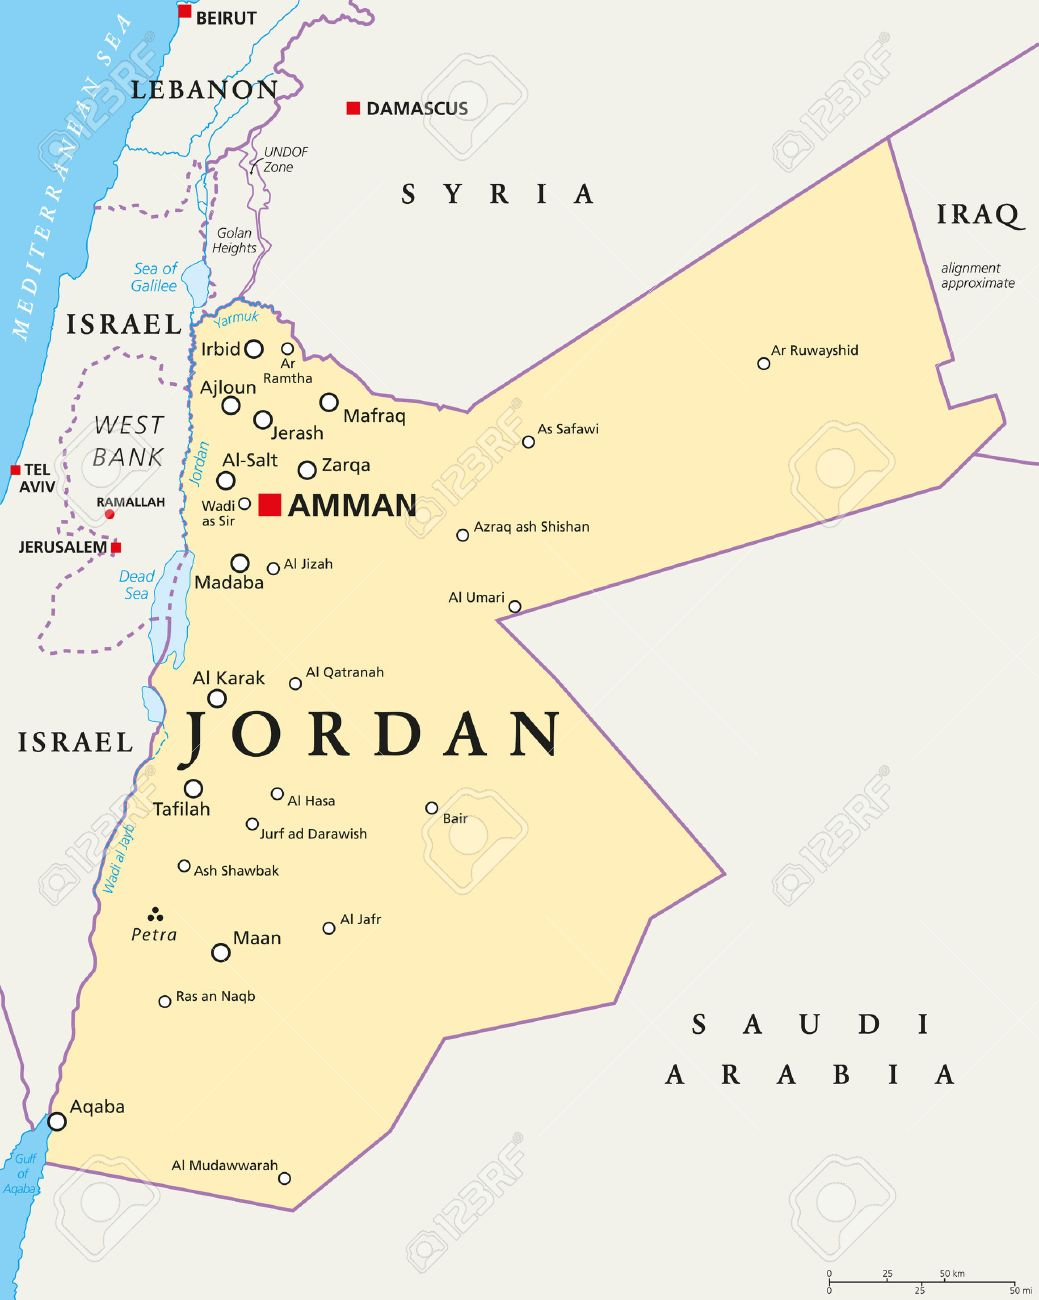 Jordan Political Map.Jordan Political Map With Capital Amman National Borders Important